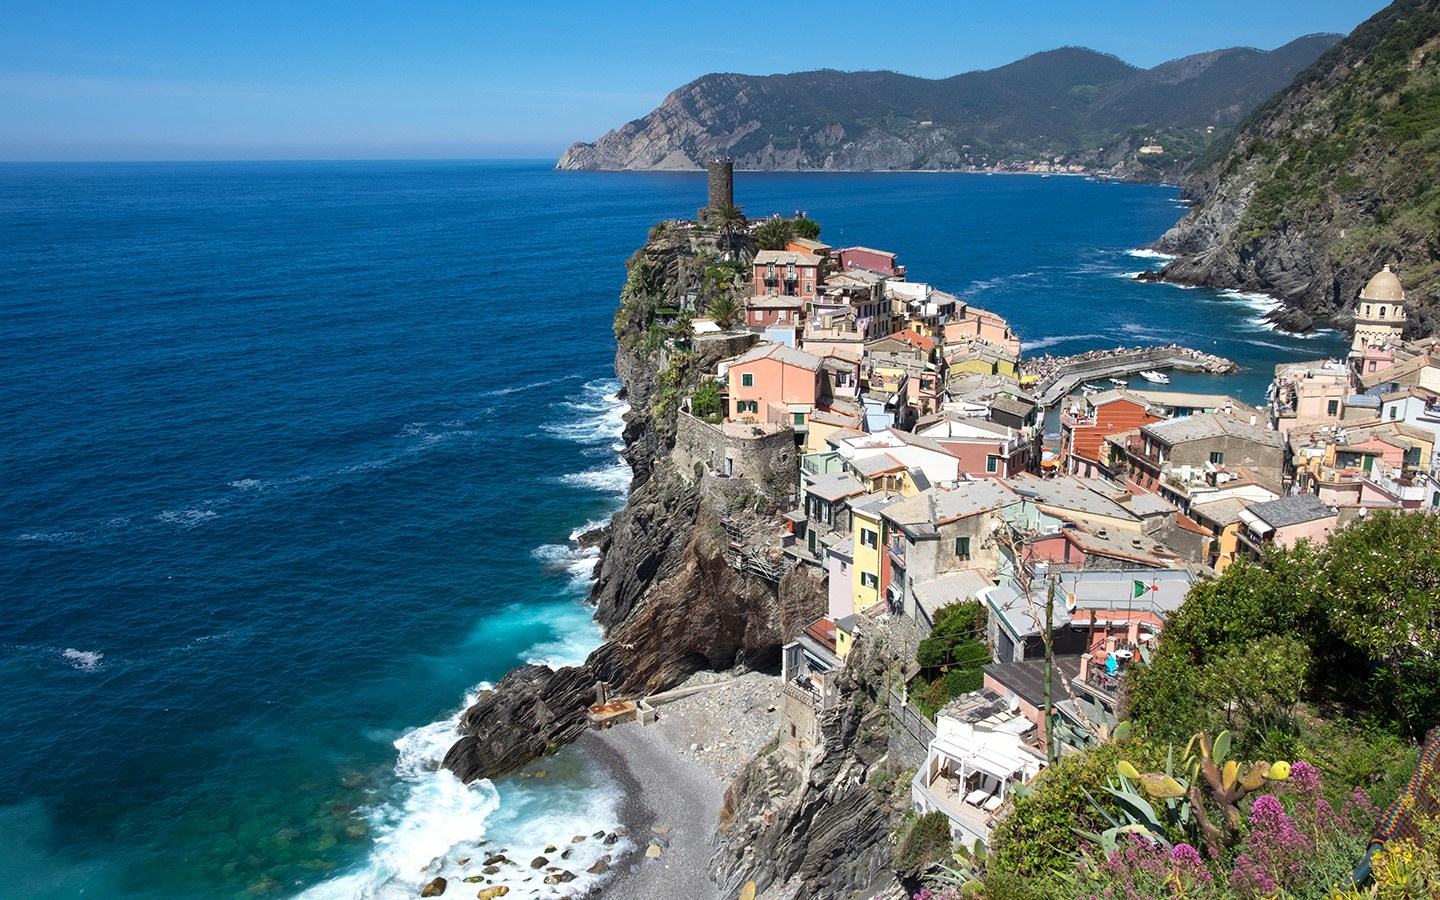 How much does it cost: 5 days in the Cinque Terre, Italy